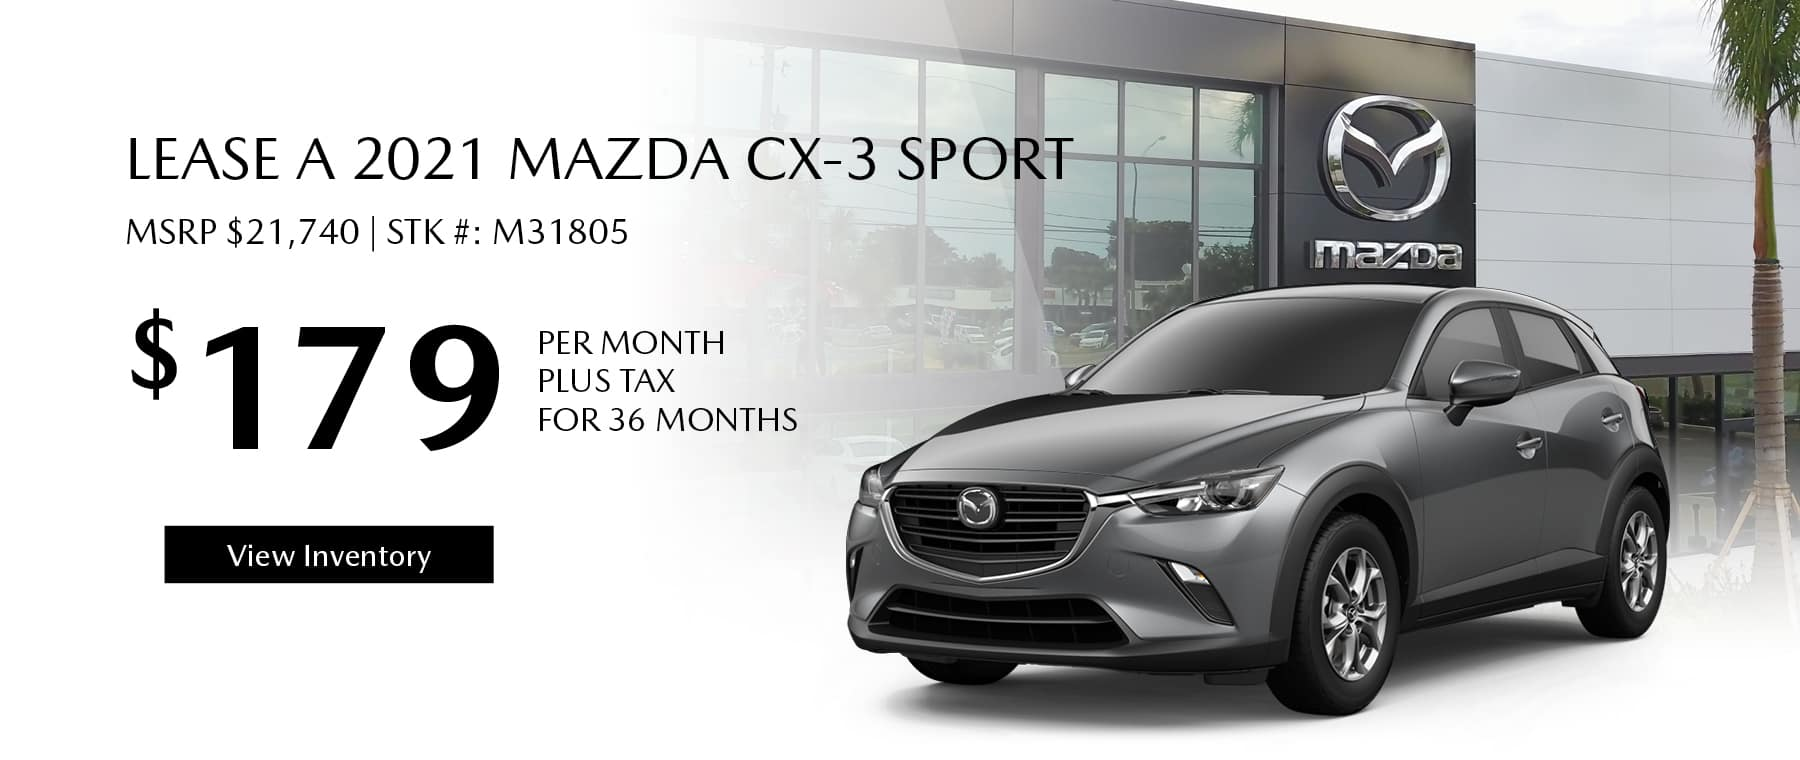 Lease the 2021 Mazda CX-3 for $179 per month, plus tax for 36 months. Click or tap here to view our inventory.